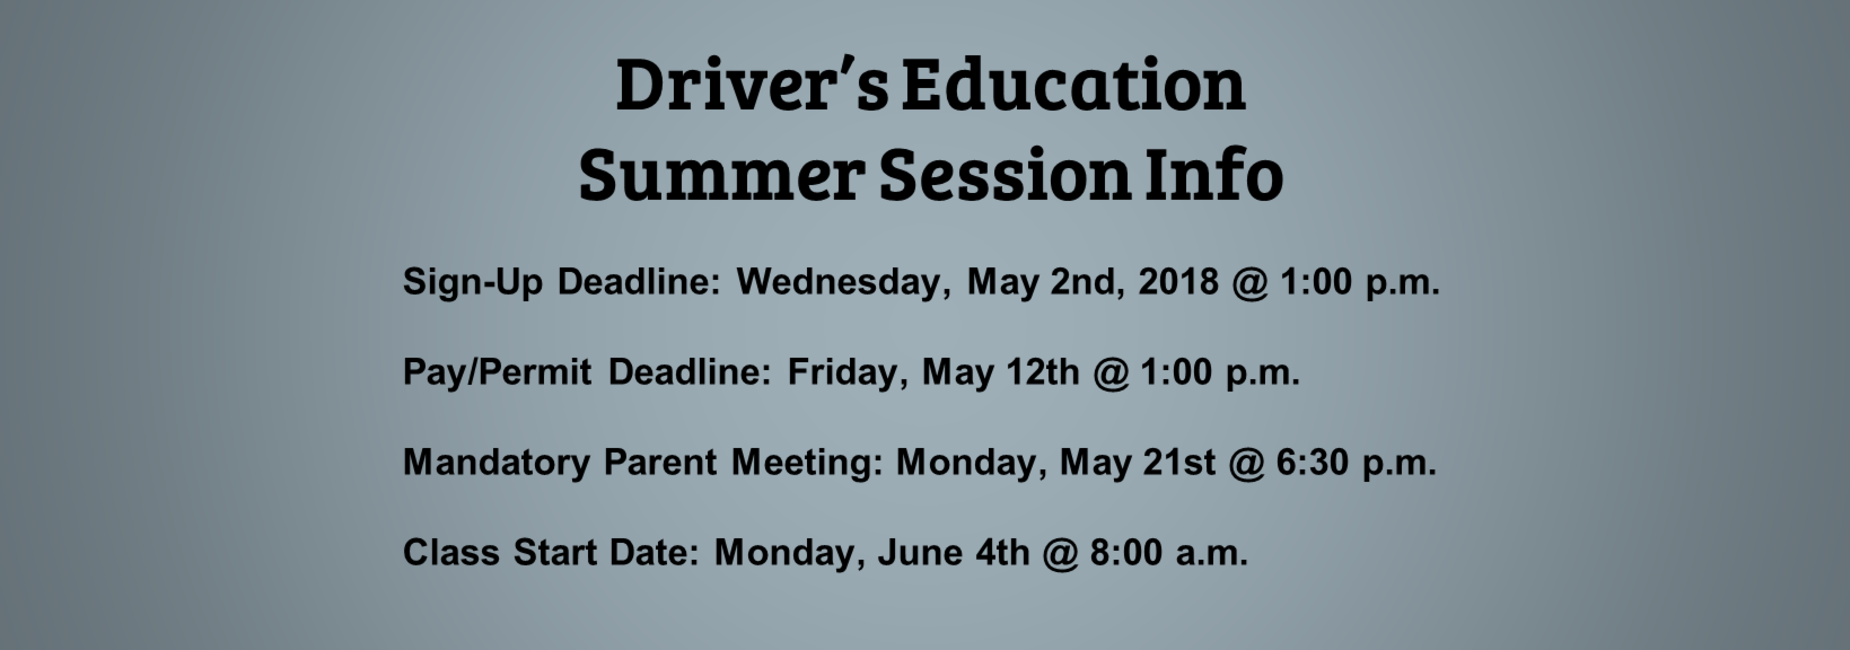 Driver's Education Summer Session info